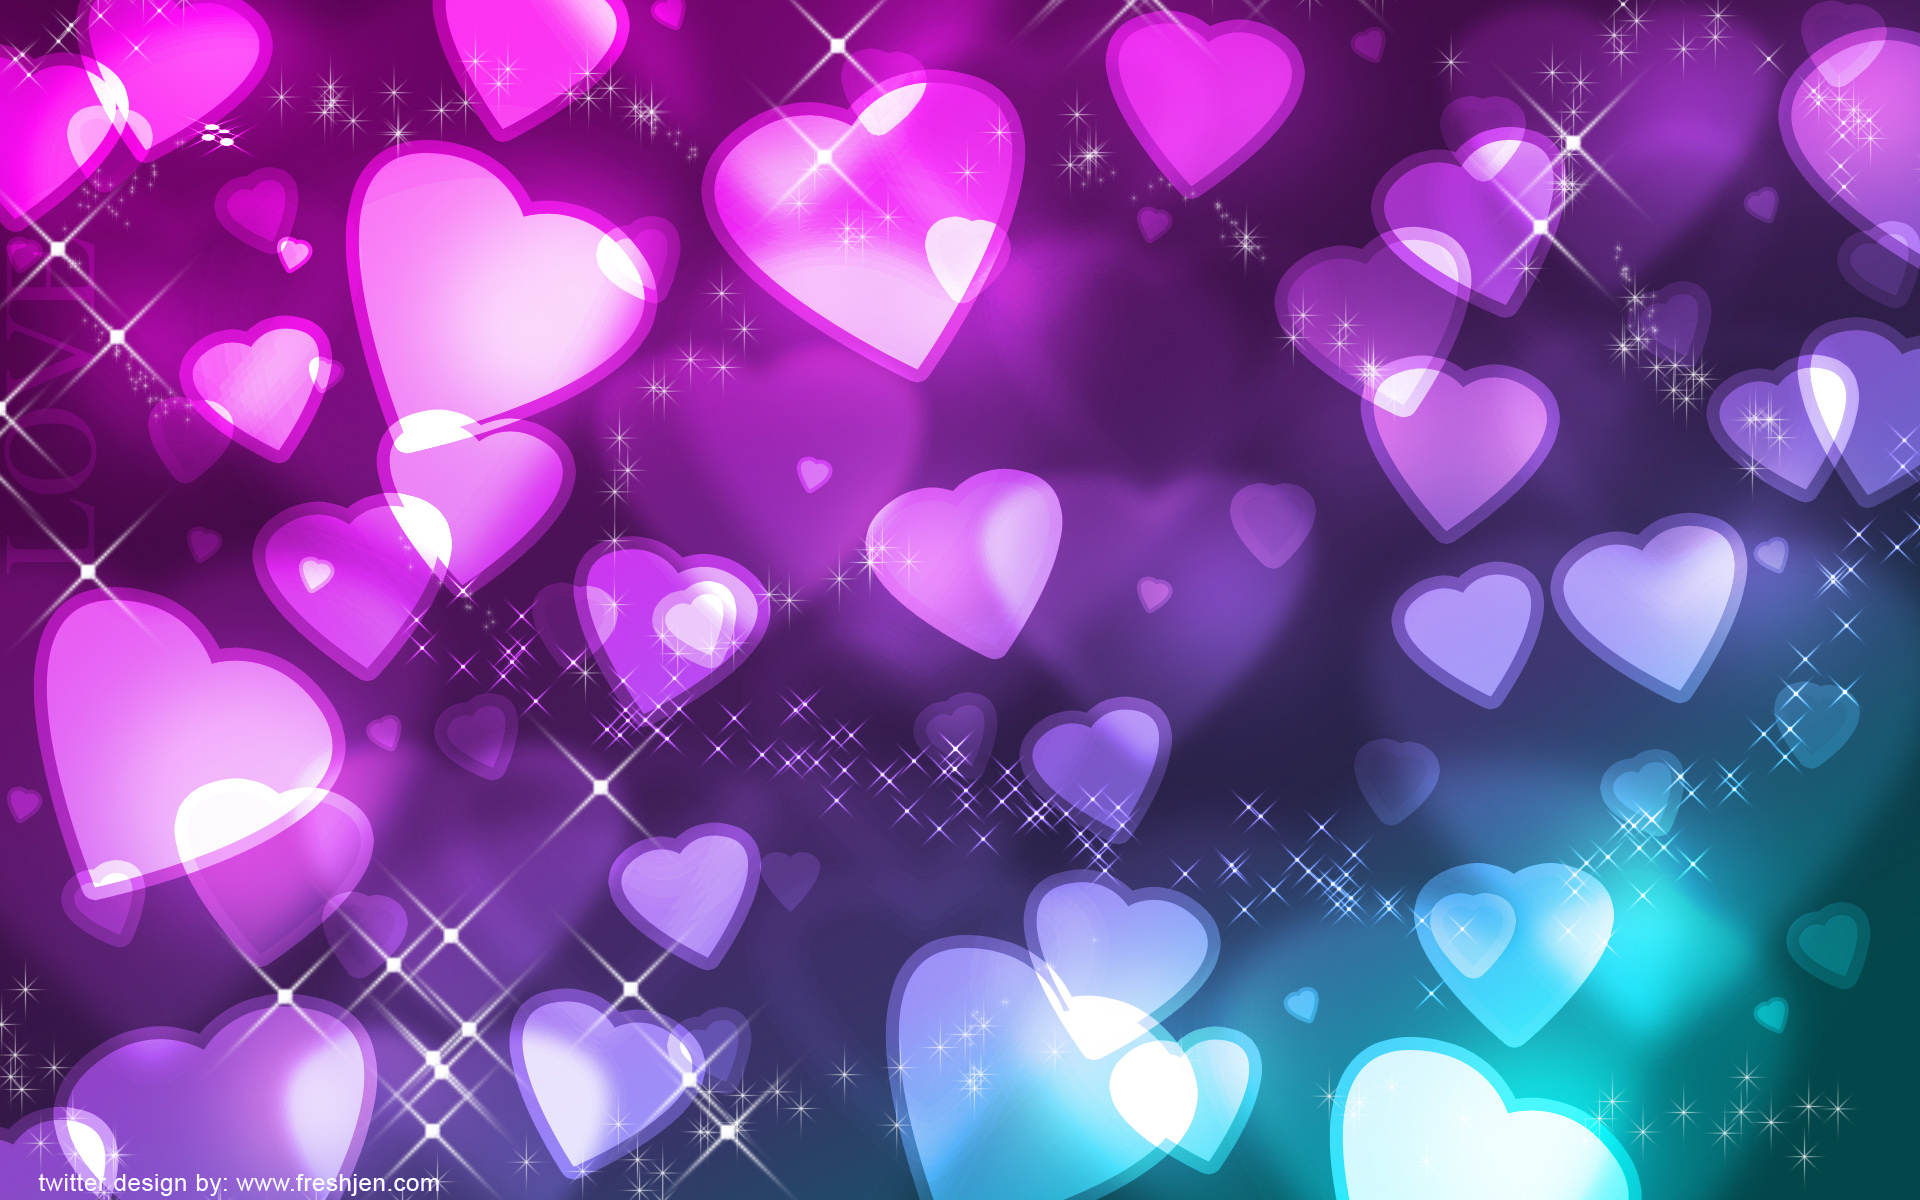 Twitter Background Backgrounds Heart Hearts Freshjen wallpapers HD 1920x1200